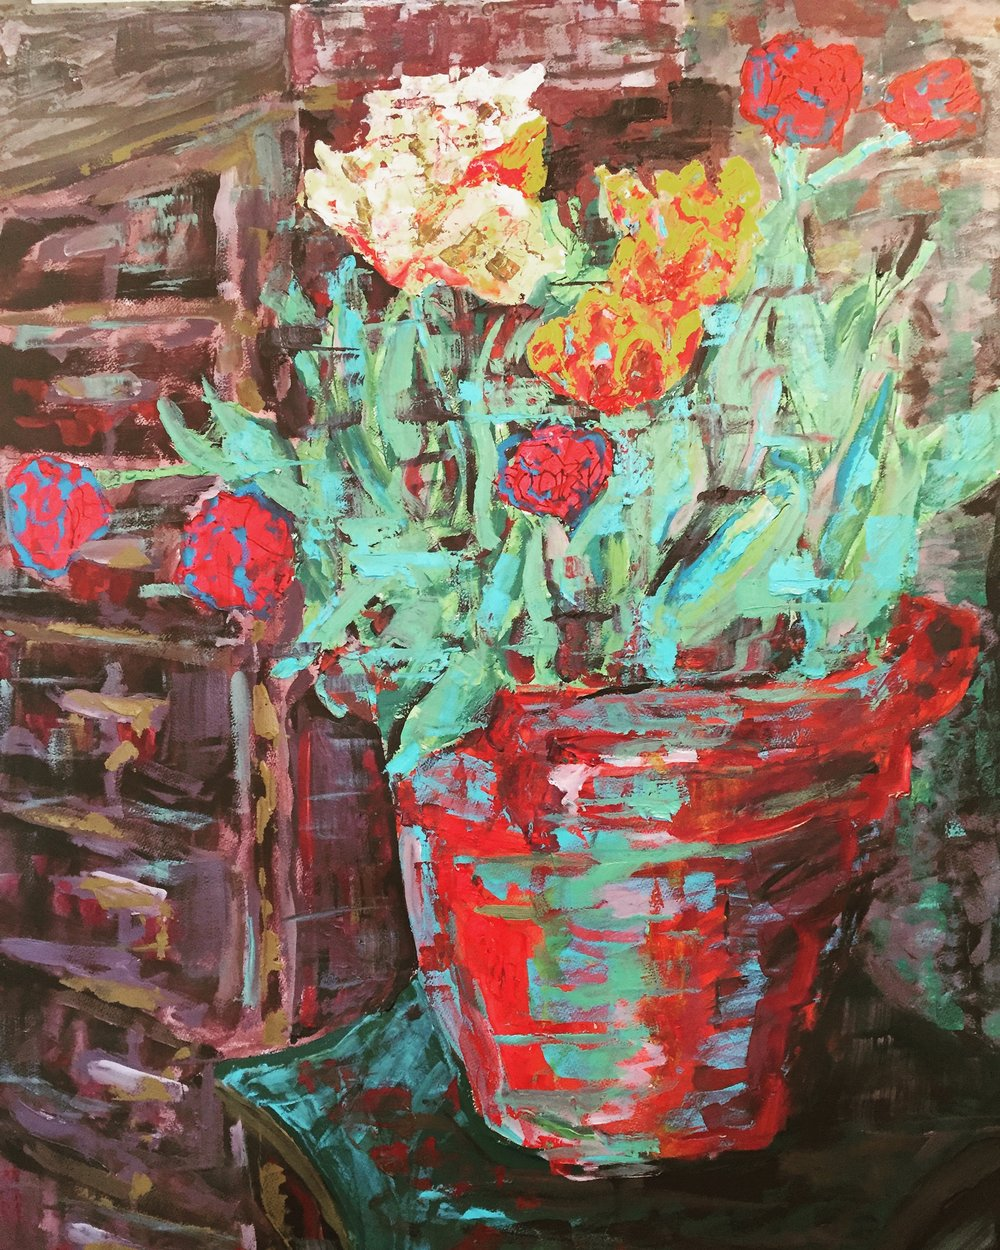 Still life flowers in red pot 2016, acrylic on paper, 118x89cm (image), 131x100cm (framed).